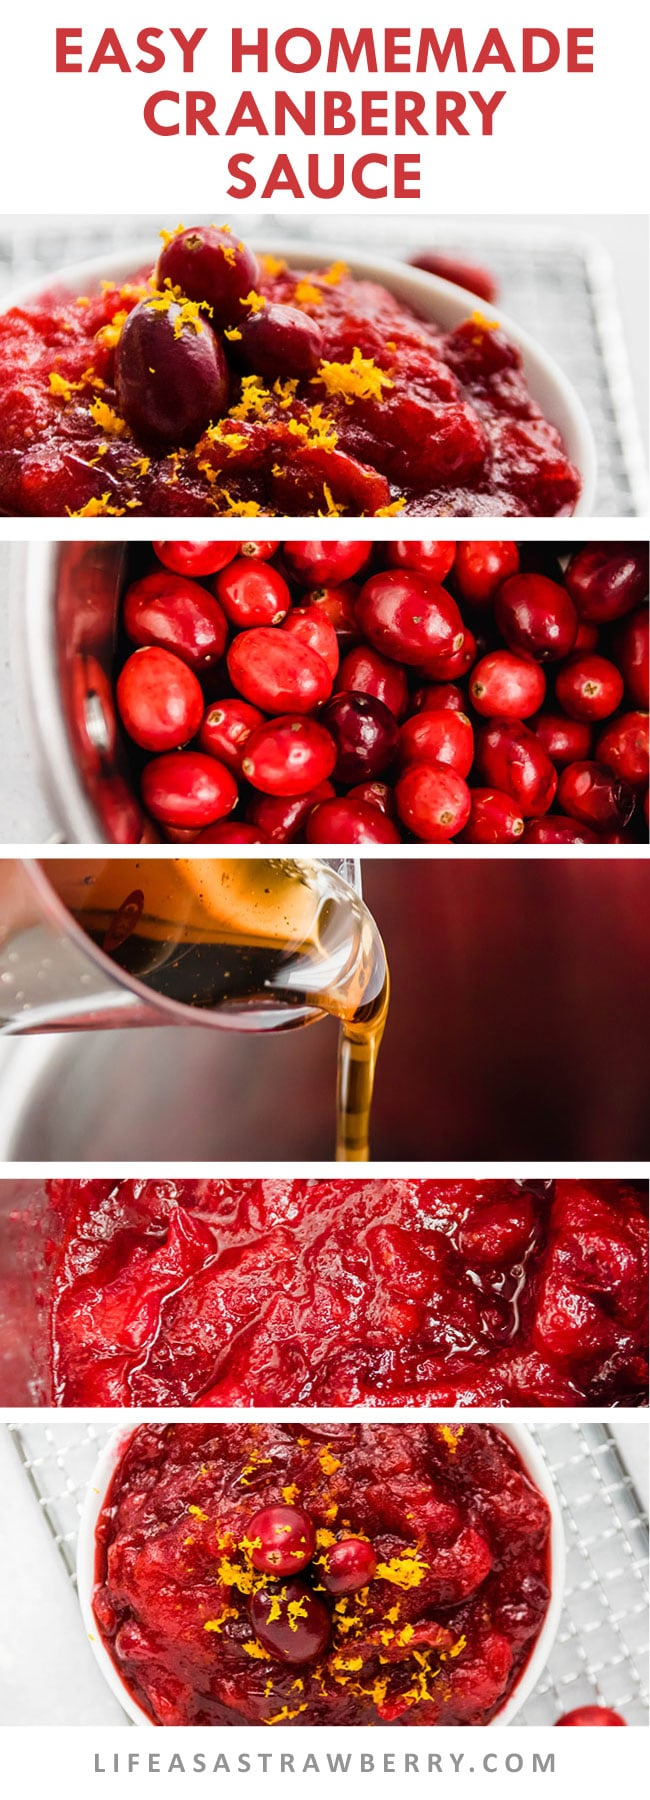 step by step photo collage illustrating how to make homemade cranberry sauce